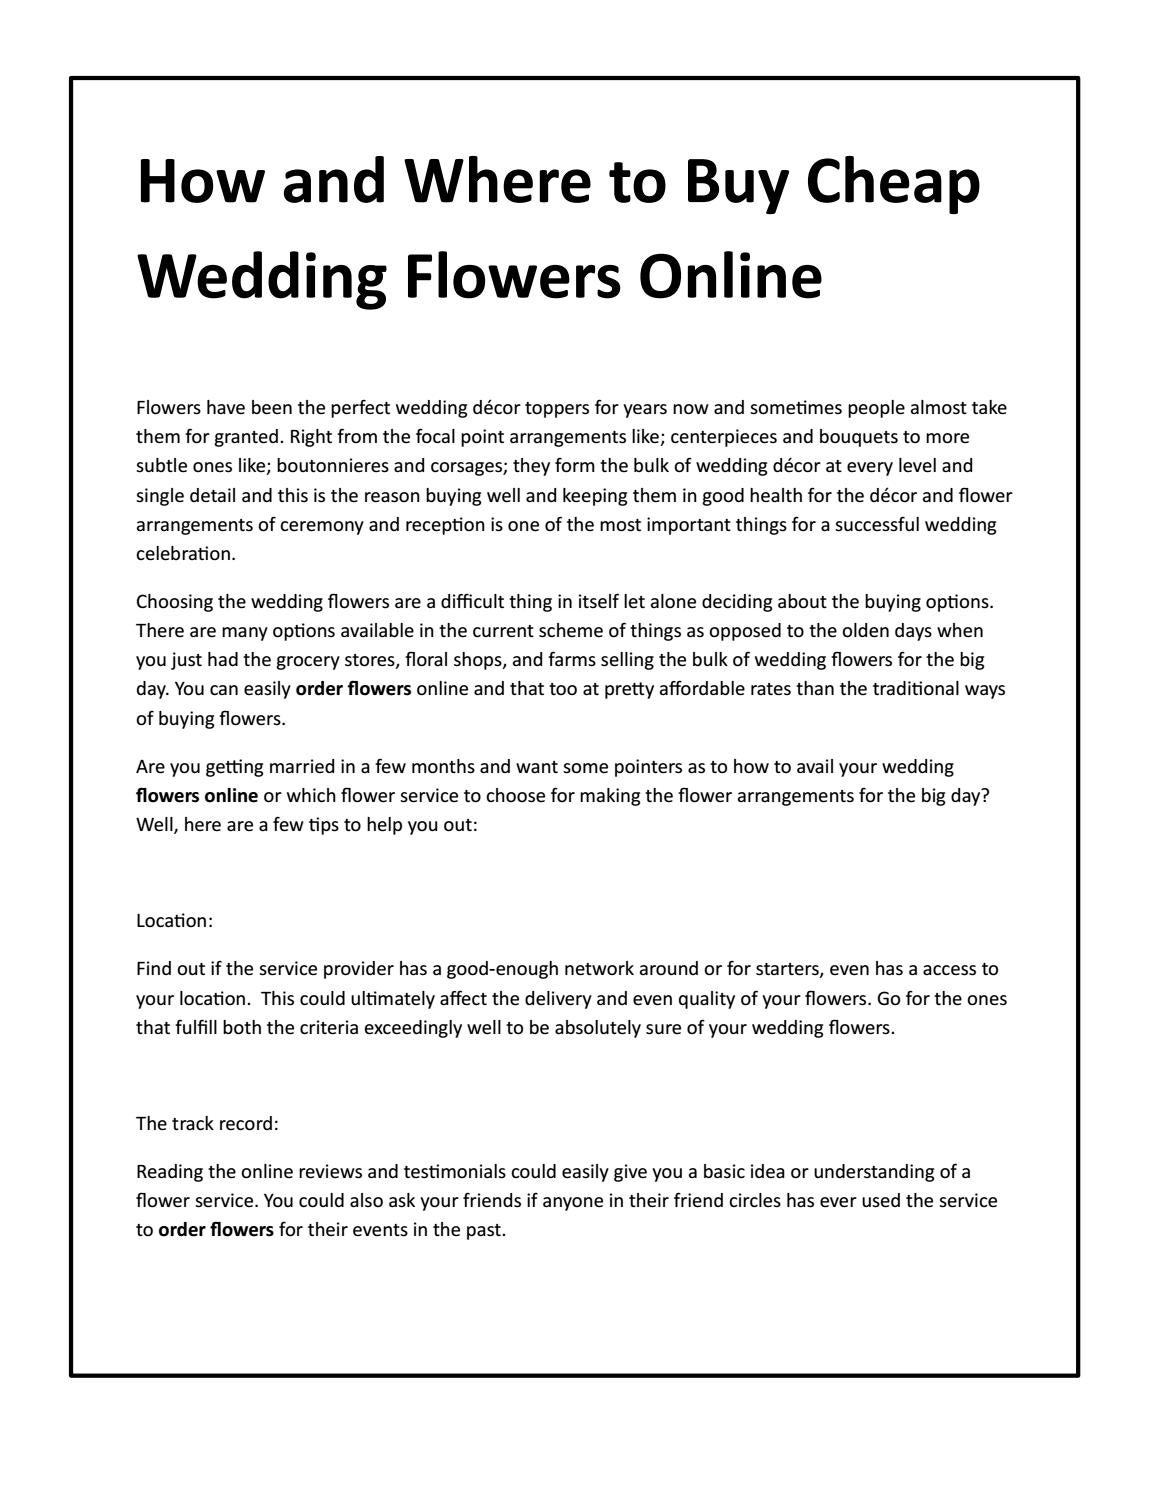 How and where to buy cheap wedding flowers online by whole blossoms how and where to buy cheap wedding flowers online by whole blossoms issuu izmirmasajfo